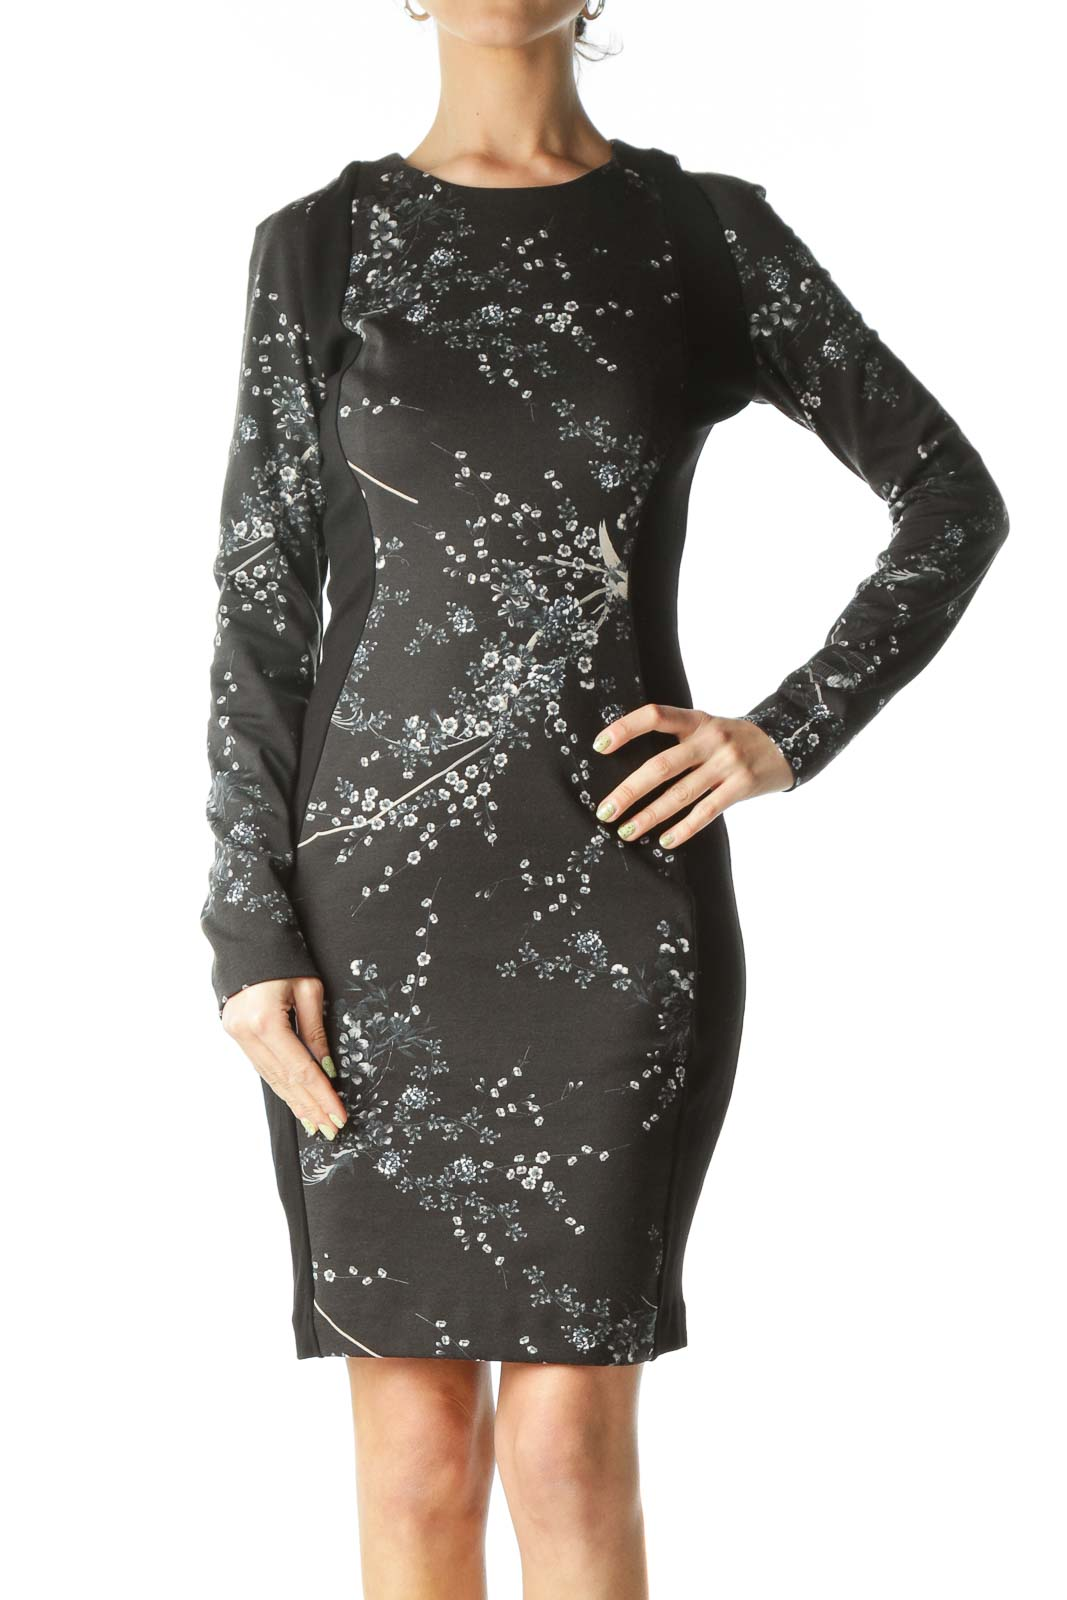 Black Floral Long-Sleeve Bodycon Dress